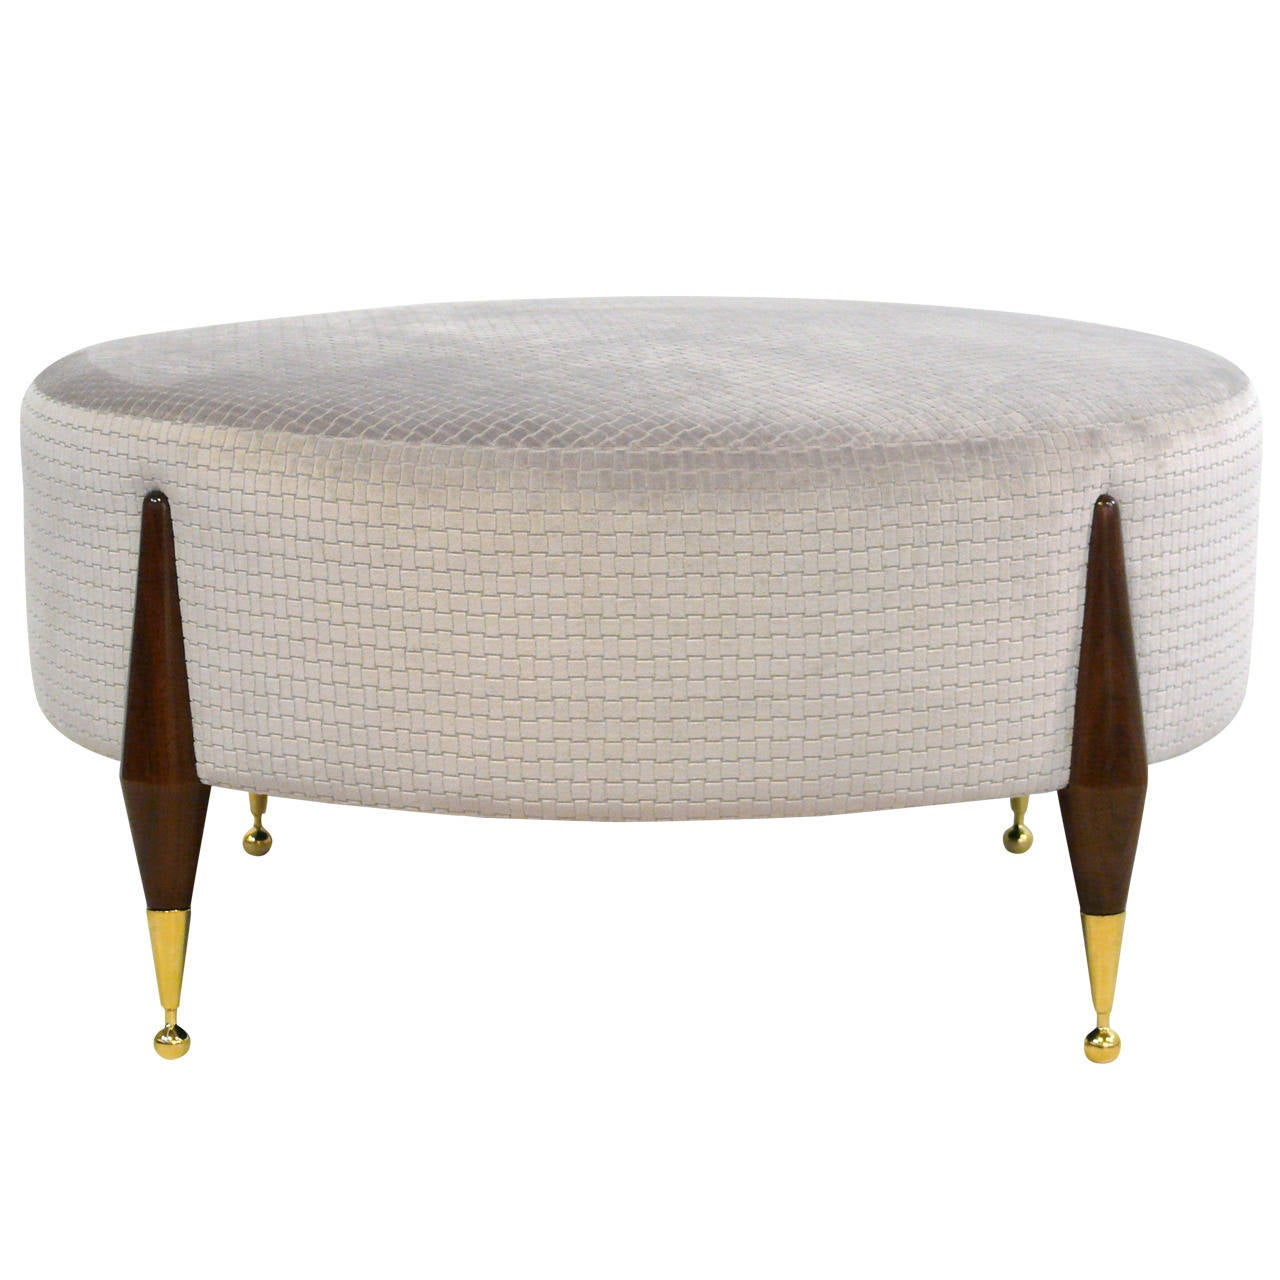 Imperial Ball Foot Ottoman Or Coffee Table For Sale At 1stdibs